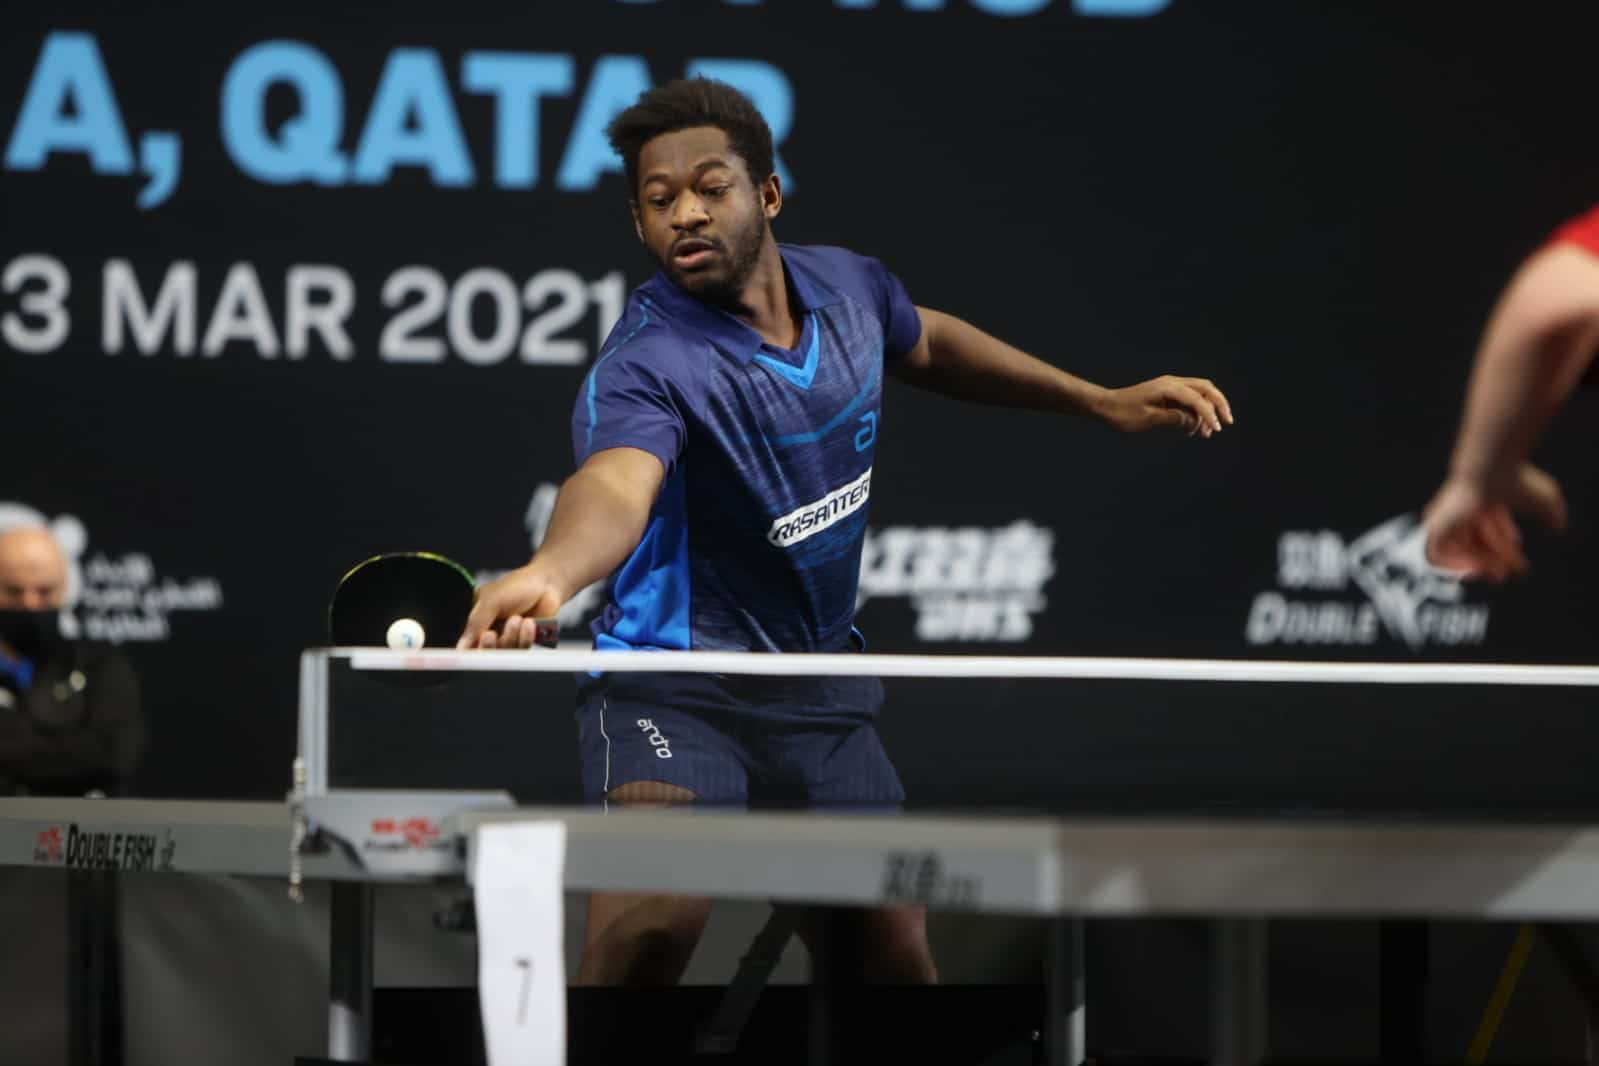 Nigeria's Omotayo Knocked Out Of WTT Tourney In Qatar